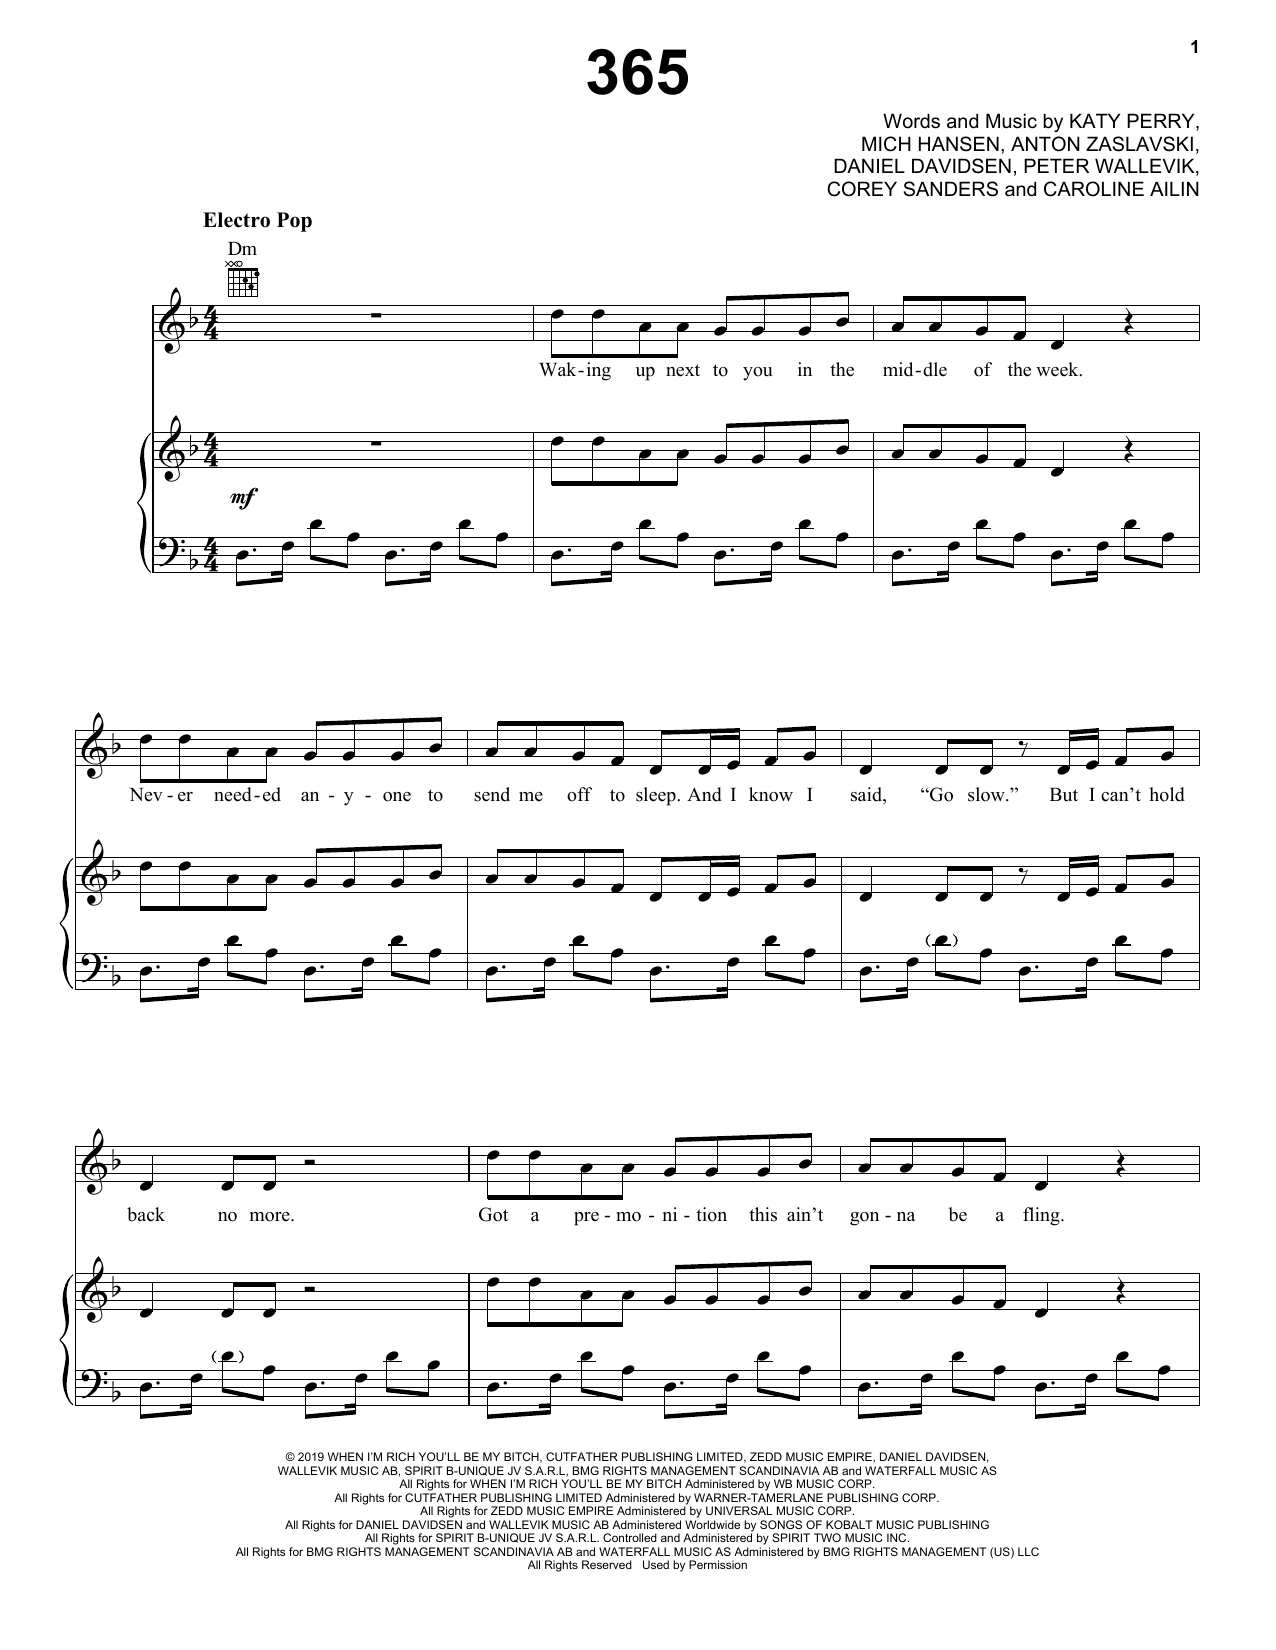 Zedd & Katy Perry 365 sheet music notes and chords. Download Printable PDF.